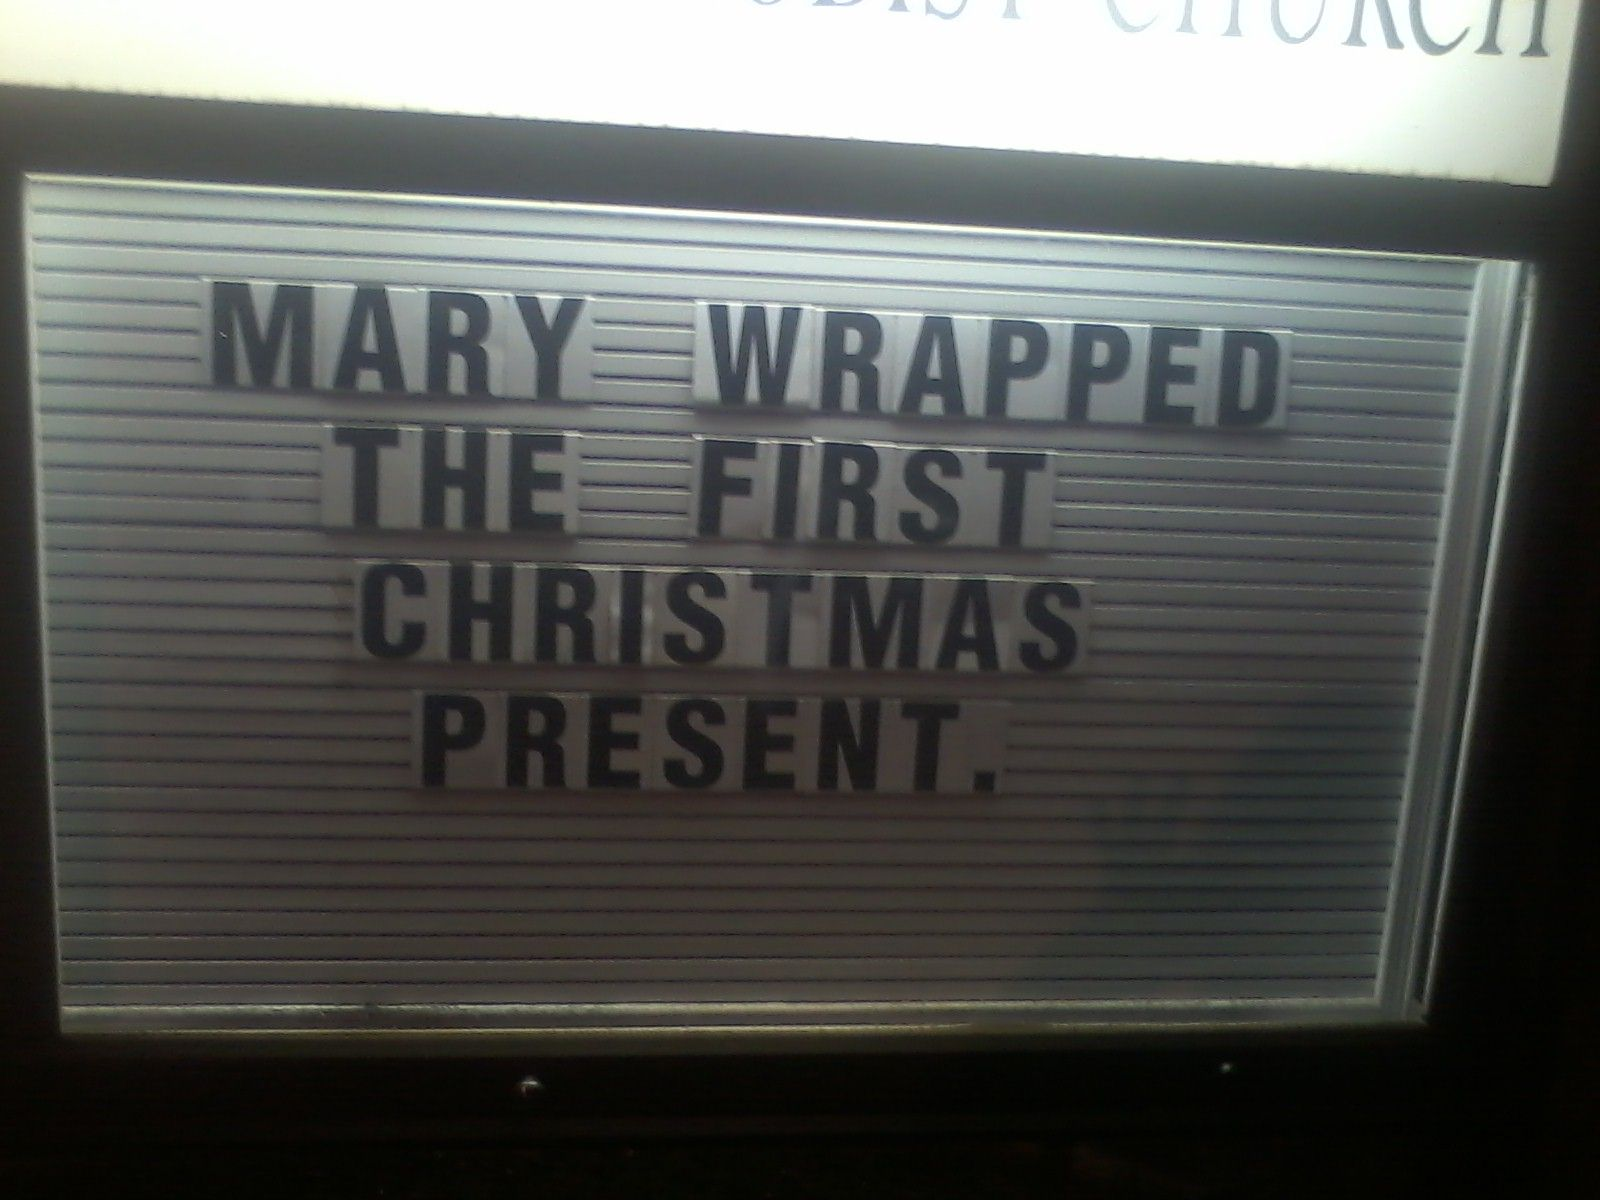 Church Sign Quotes Mary Wrapped The First Christmas Present  Christmas Giggles